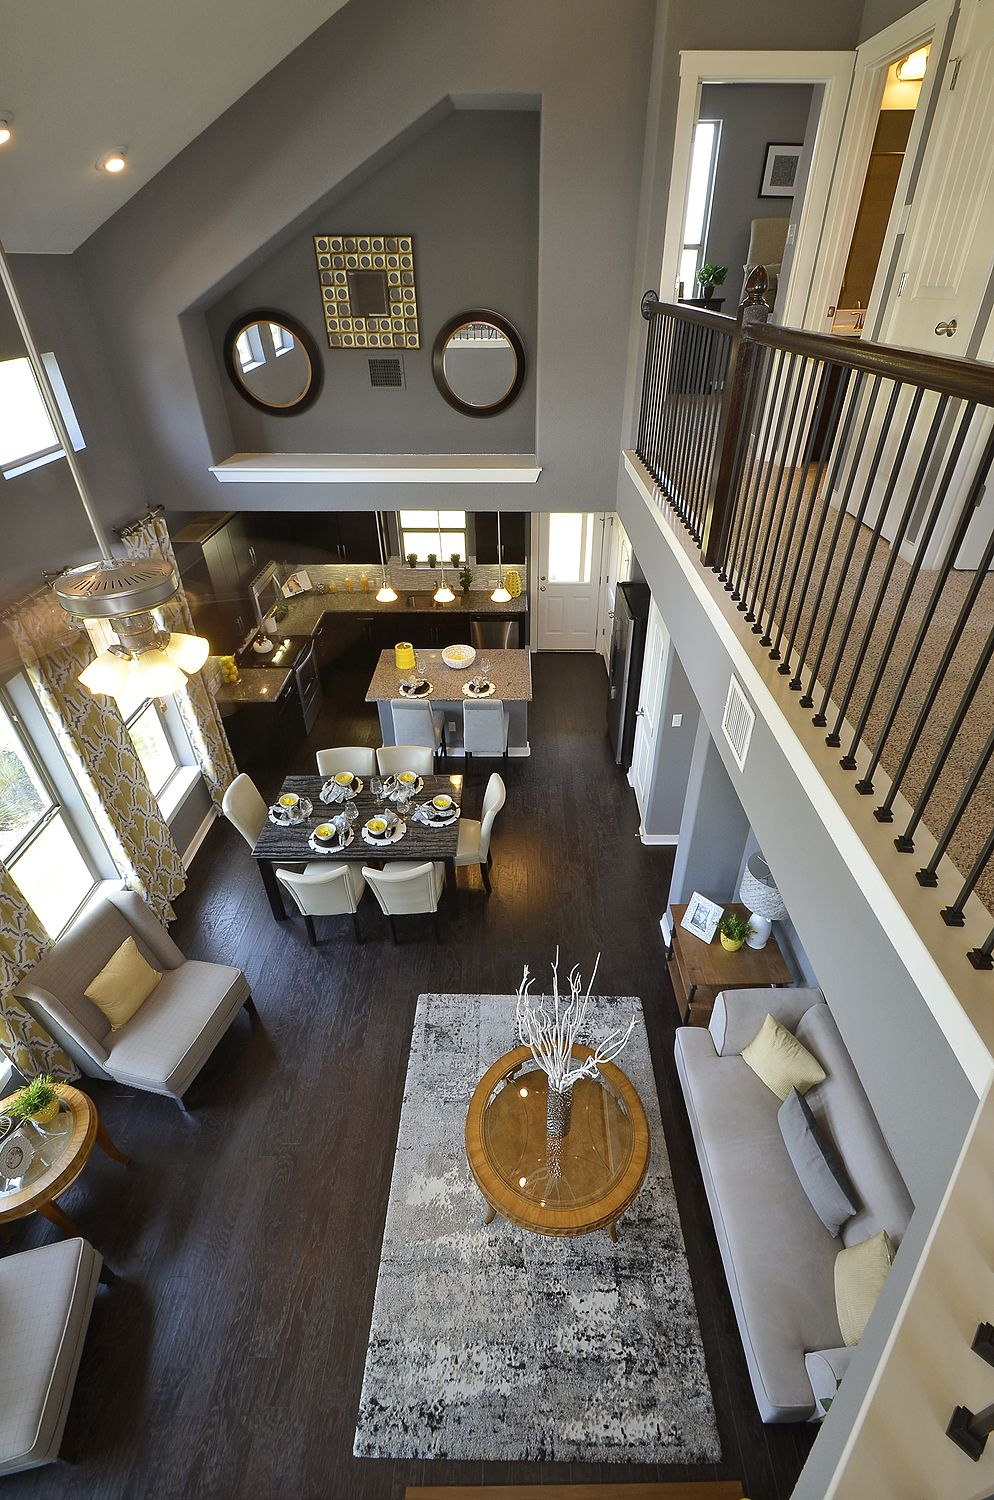 Preston village in 2019 austin tx dream homes living - What to do with an extra living room ...